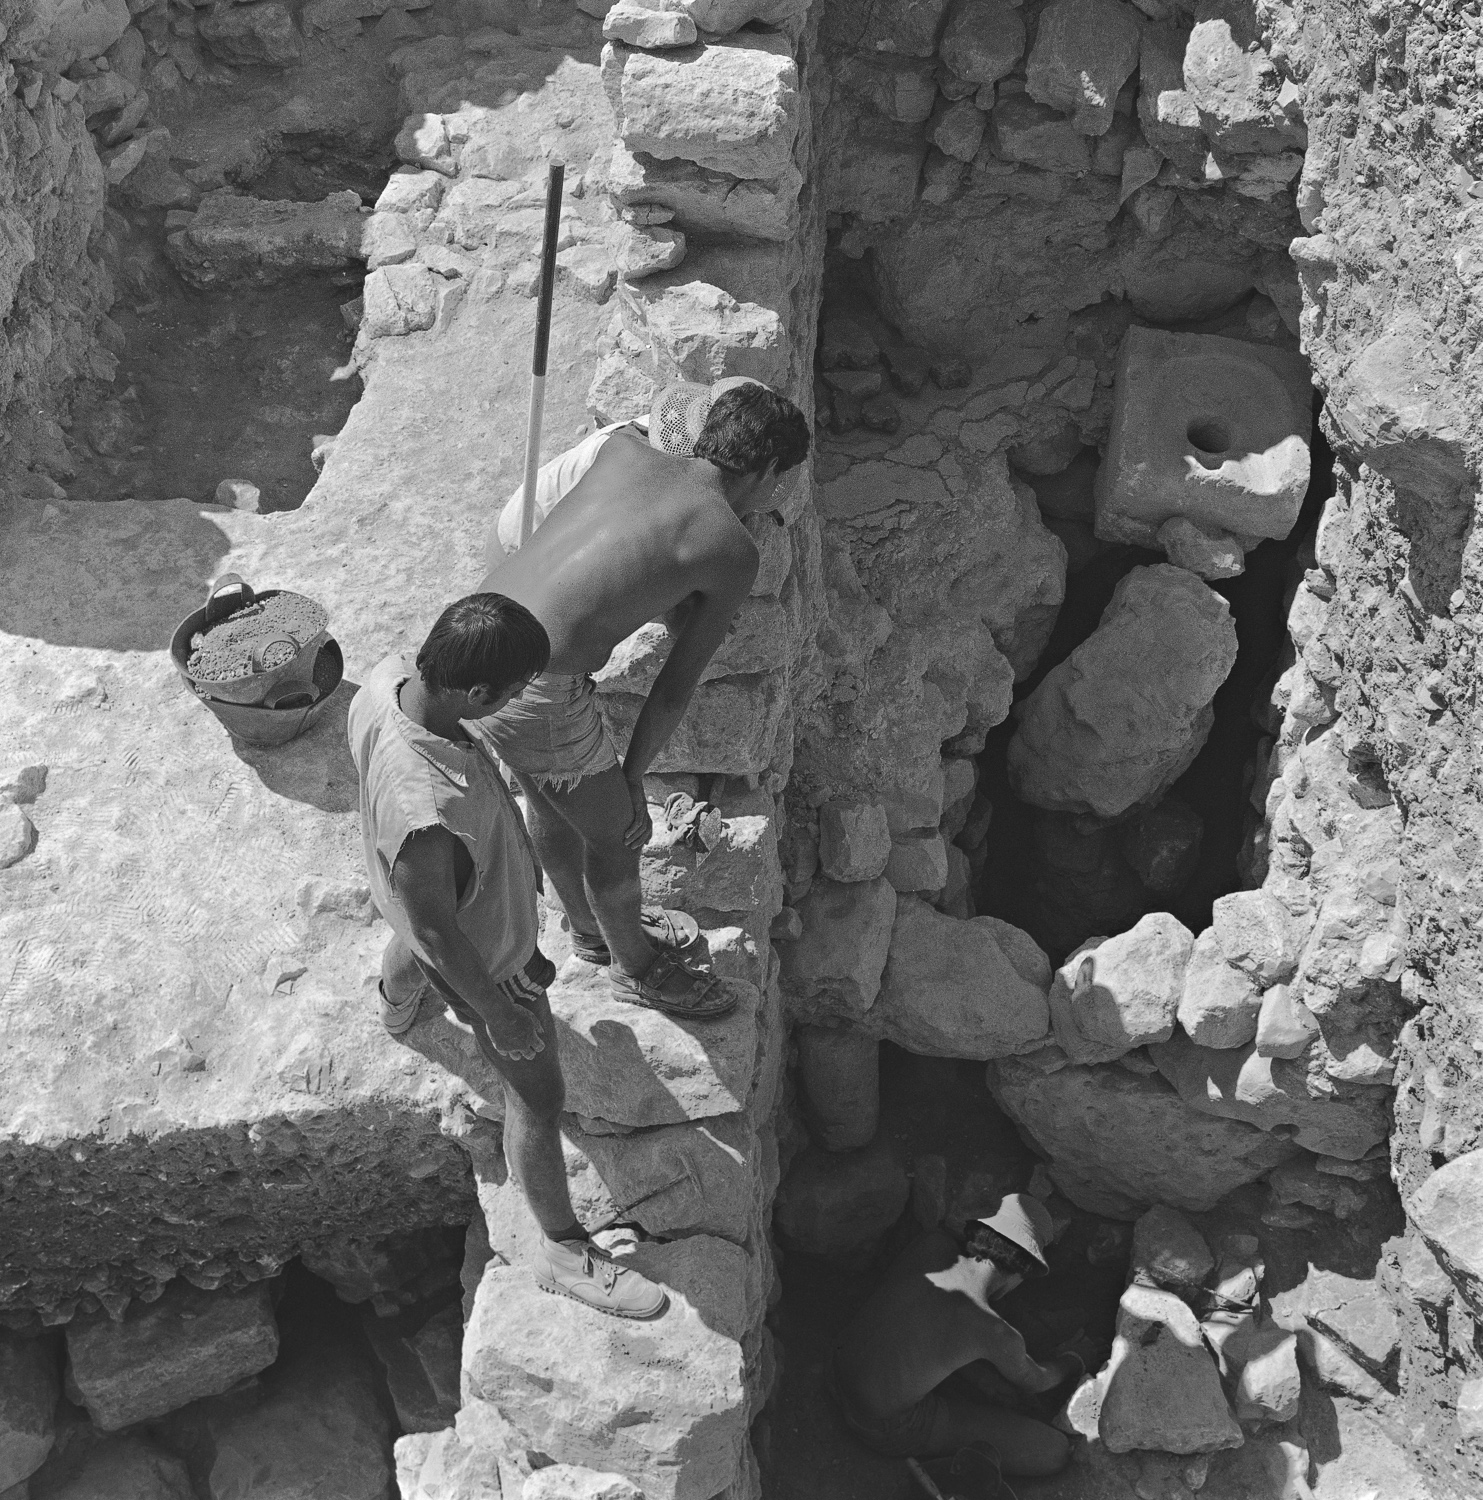 Discovering the toilet - Jerusalem, 1979